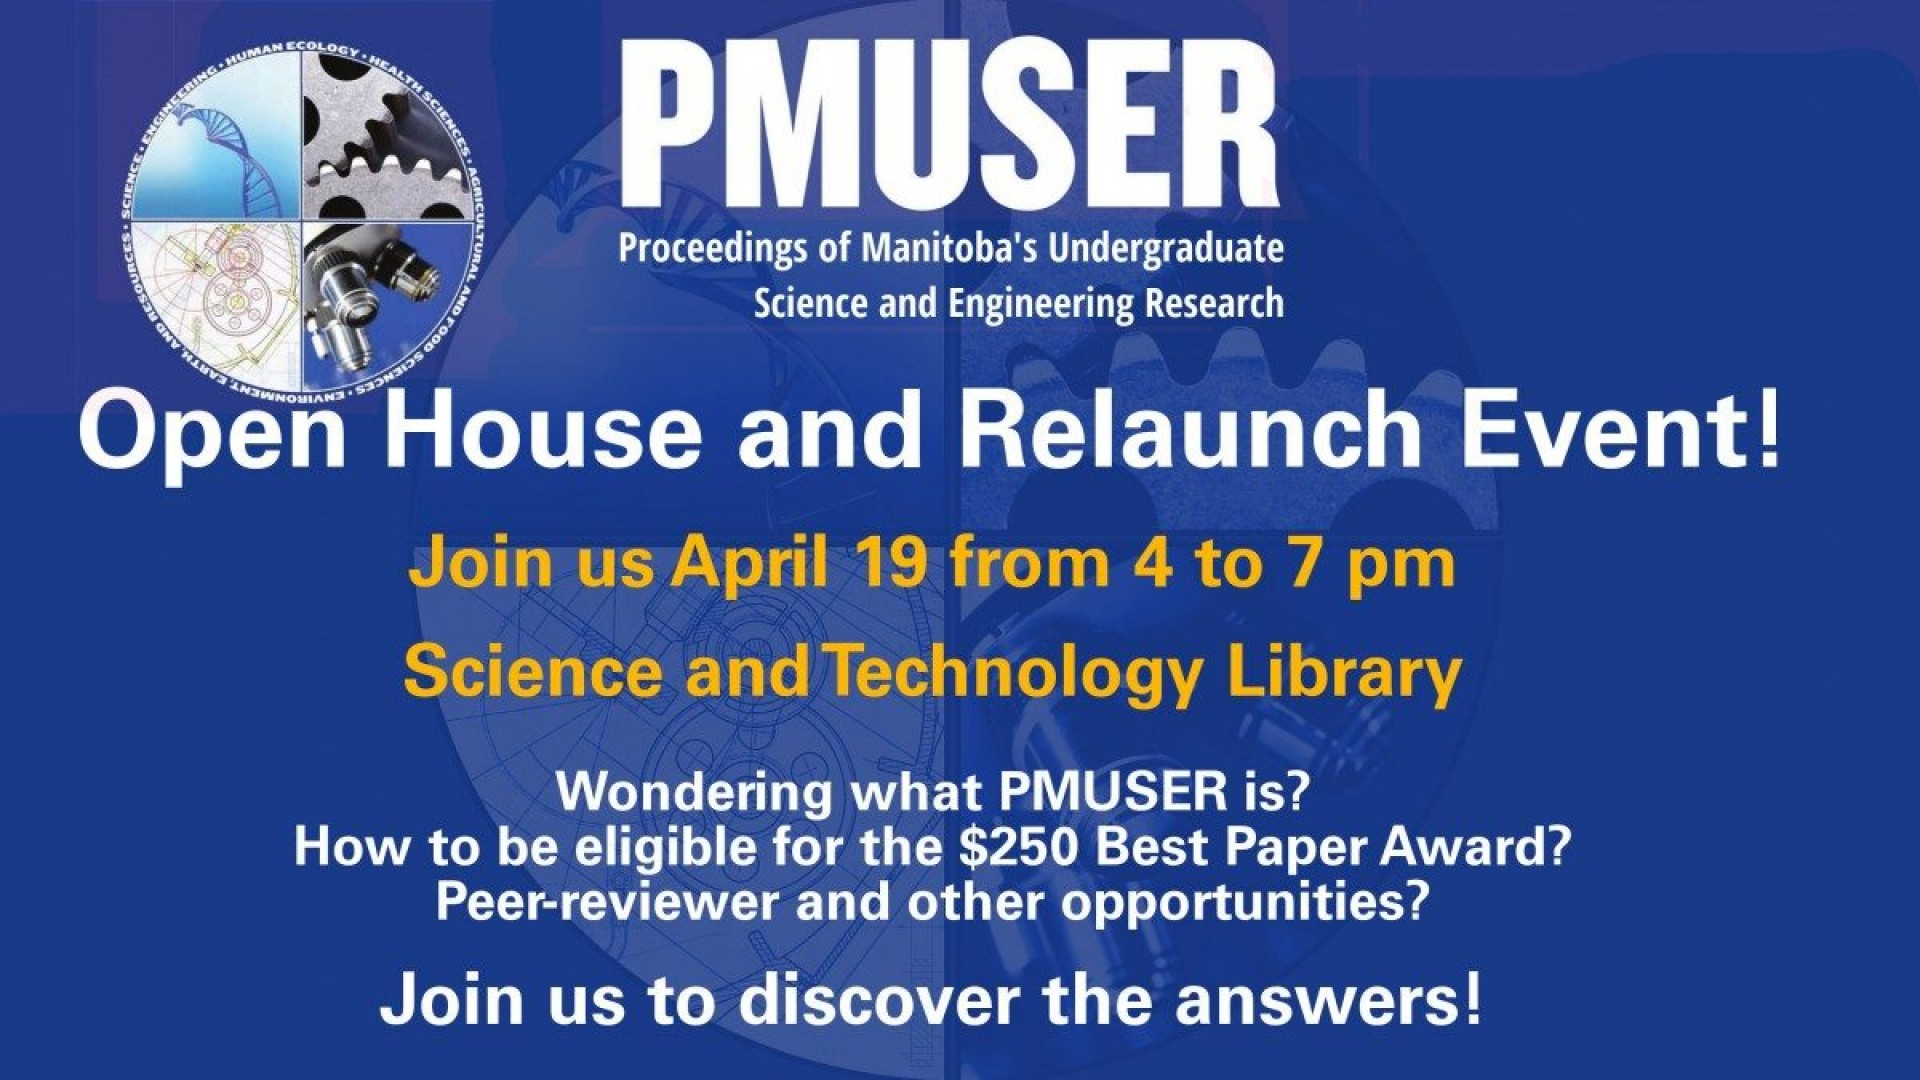 013 Research Paper How To Publish As An Undergraduate Pmuser Openhouse Marvelous A In India 1920